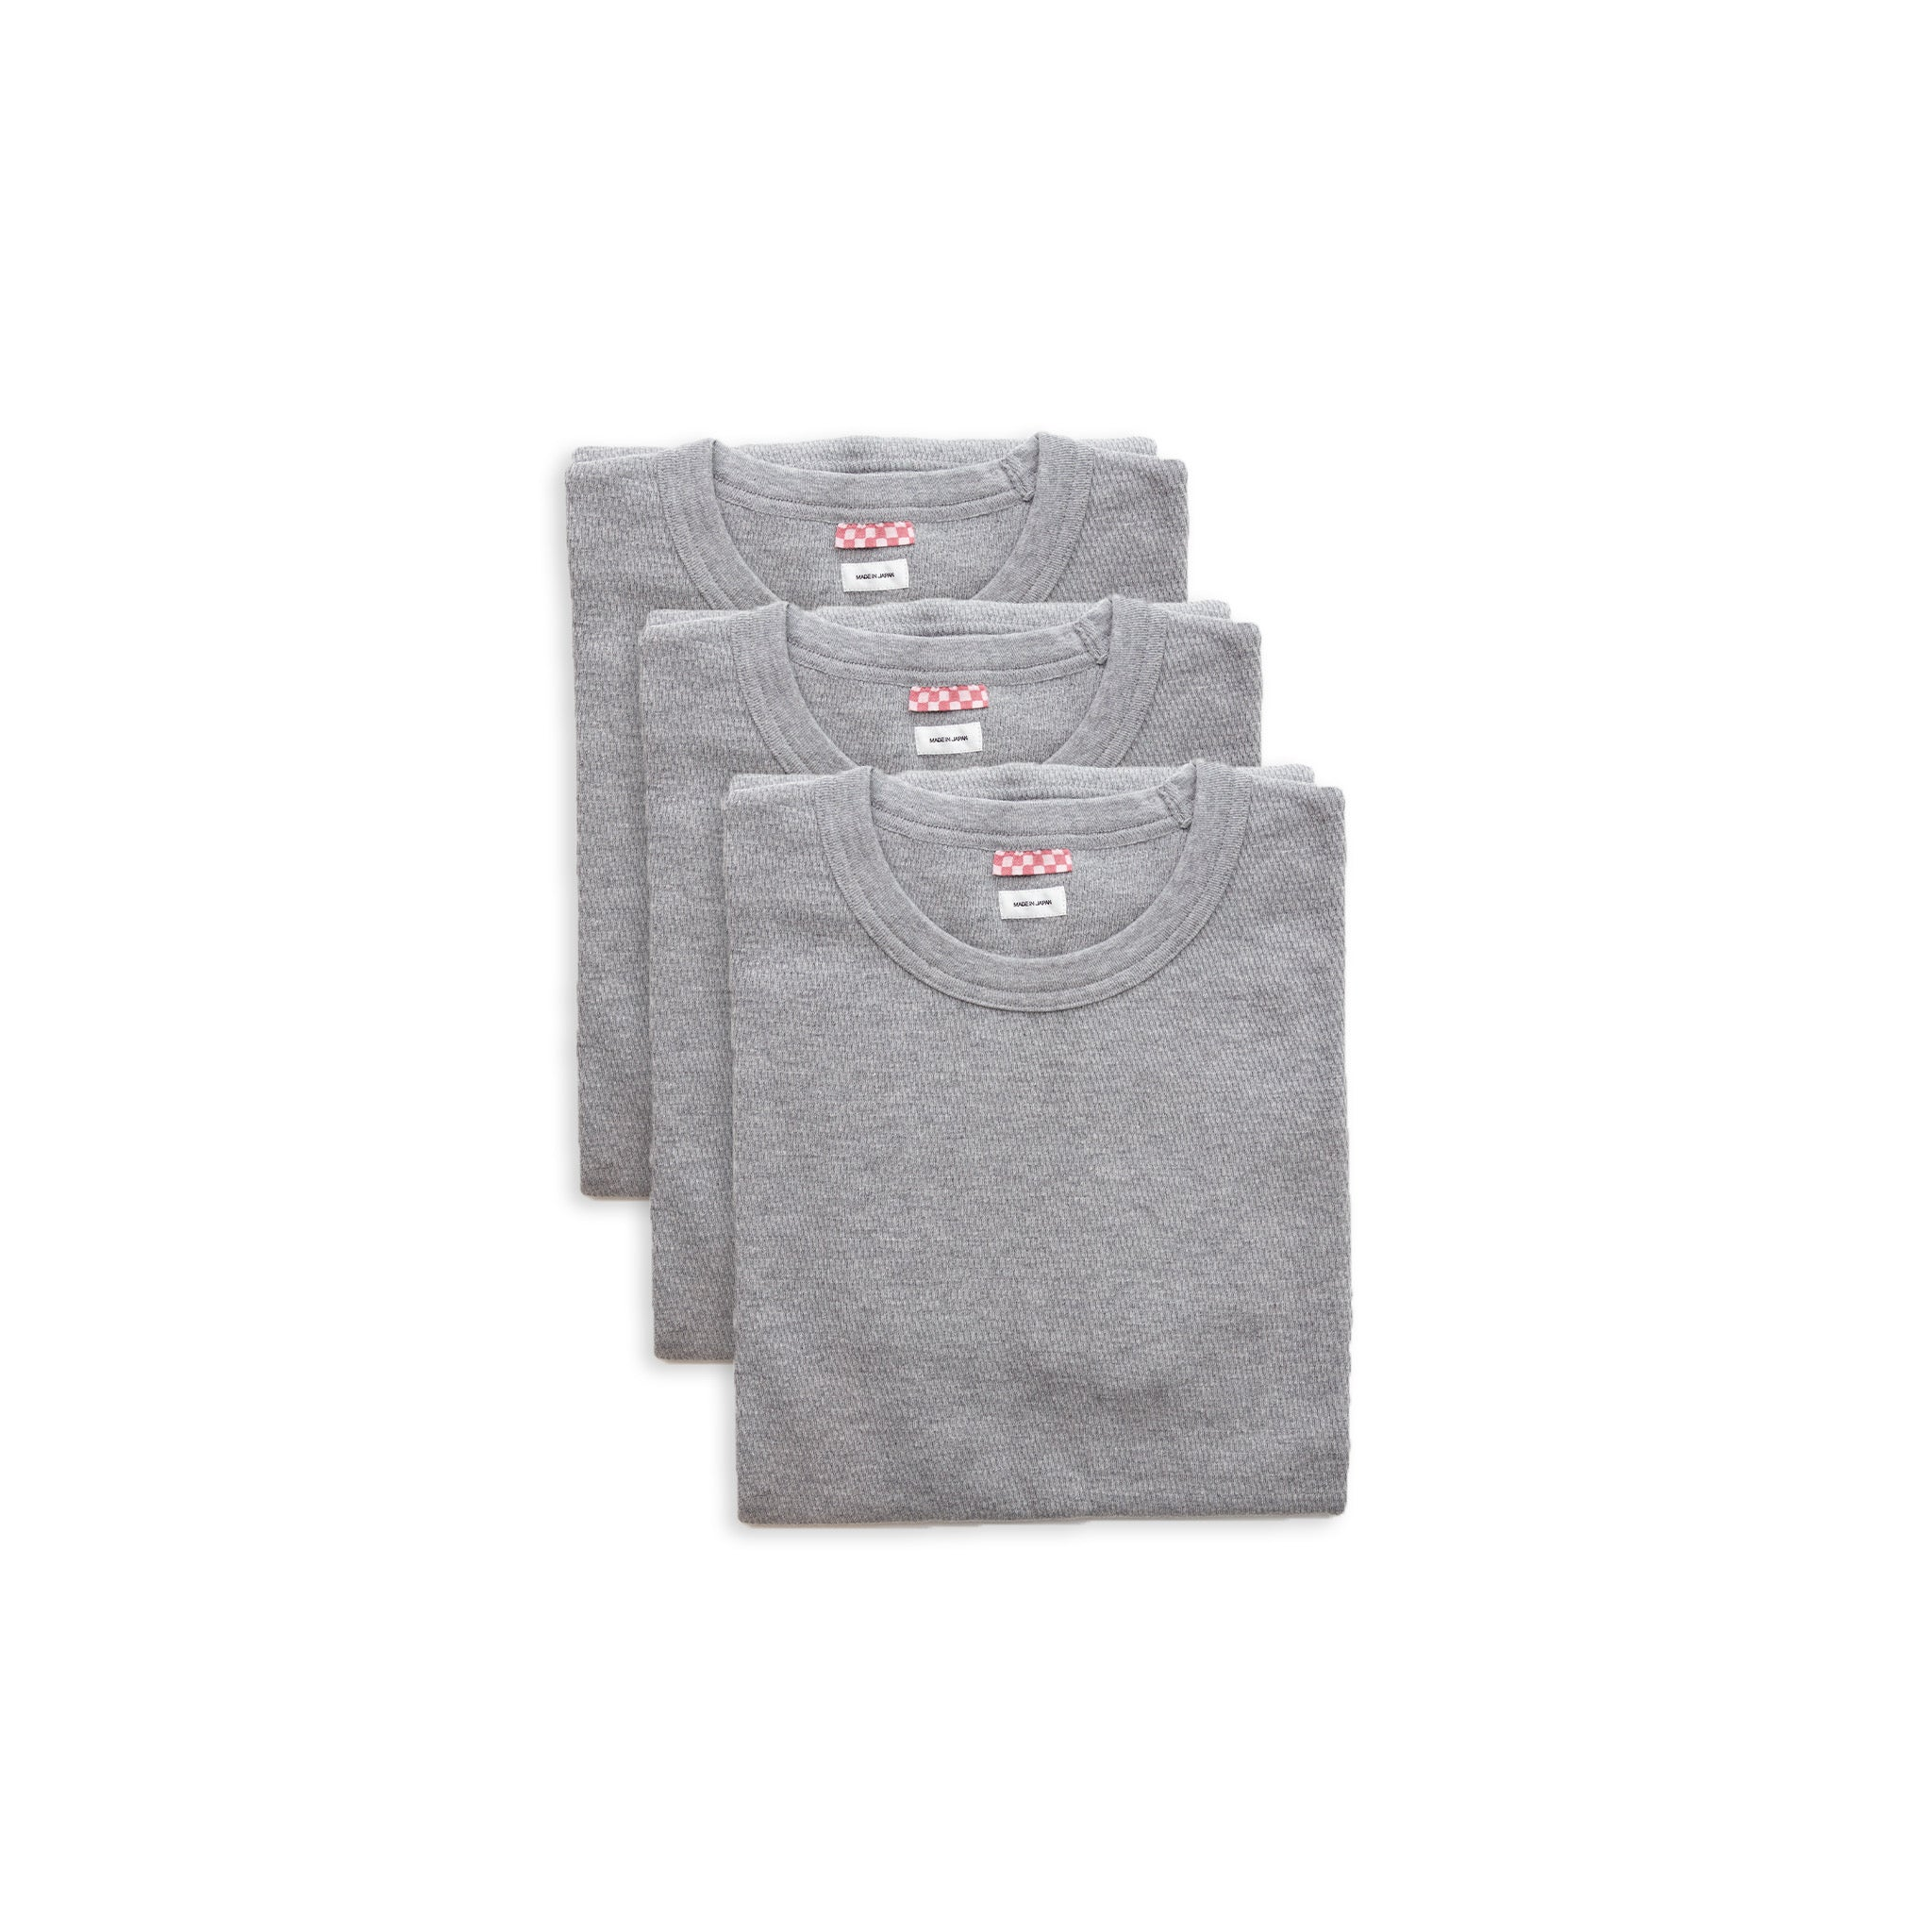 SUBLIG THERMAL CREW 3-PACK S/S  - GREY